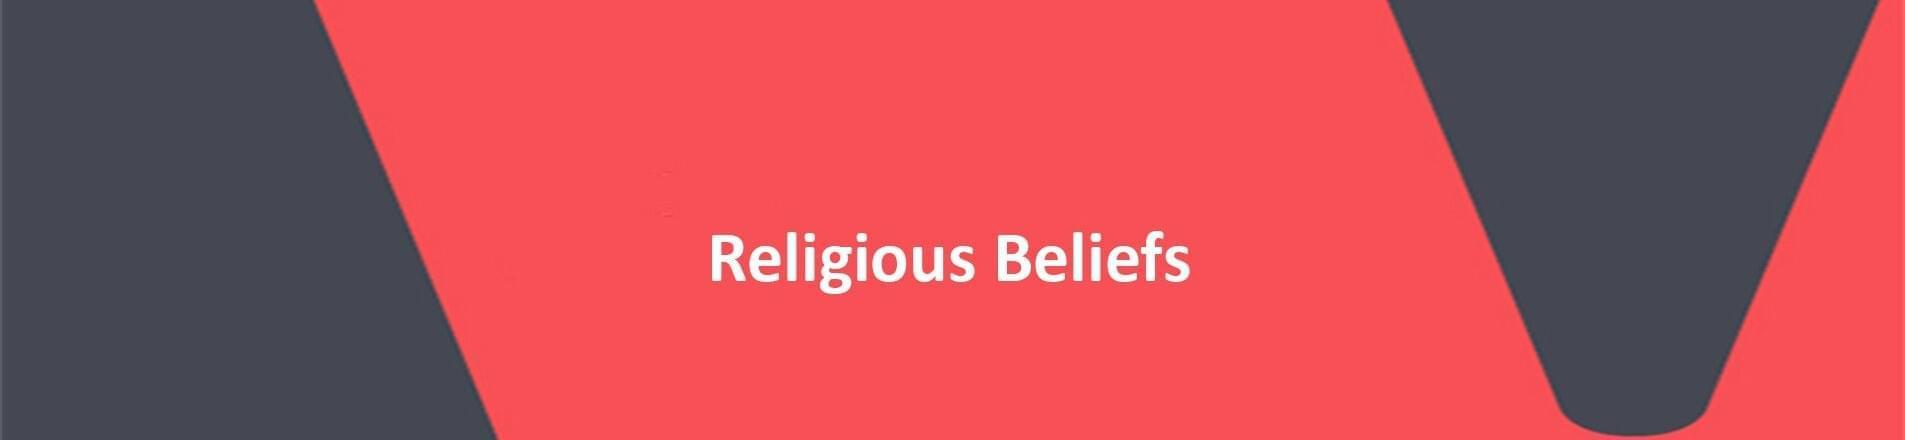 Religious Beliefs on red VERCIDA background